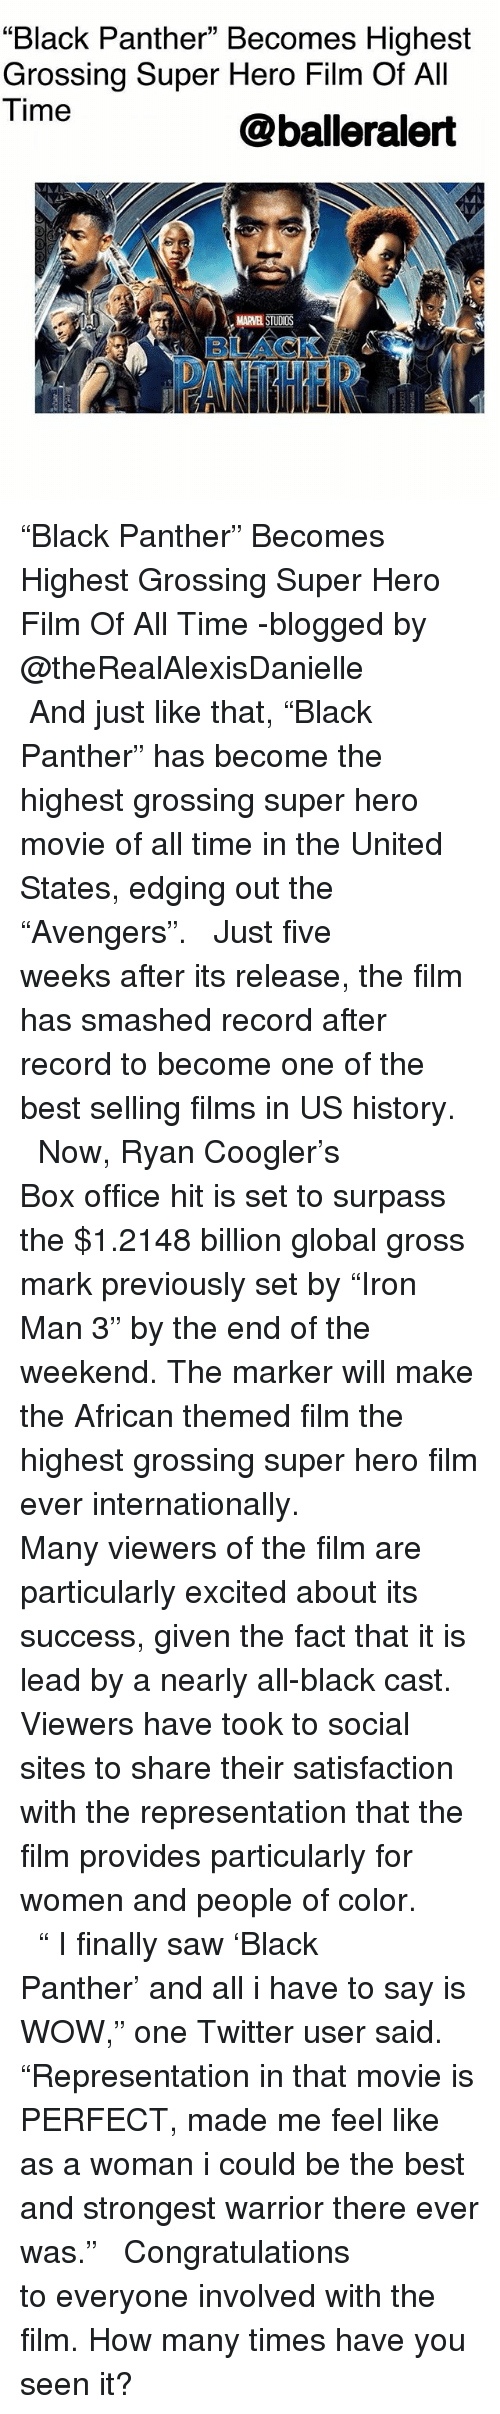 """us history: """"Black Panther"""" Becomes Highest  Grossing Super Hero Film Of All  Time  @balleralert  MARVEL STUDIOS  BLACKA.  ATHER """"Black Panther"""" Becomes Highest Grossing Super Hero Film Of All Time -blogged by @theRealAlexisDanielle ⠀⠀⠀⠀⠀⠀⠀ ⠀⠀⠀⠀⠀⠀⠀ And just like that, """"Black Panther"""" has become the highest grossing super hero movie of all time in the United States, edging out the """"Avengers"""". ⠀⠀⠀⠀⠀⠀⠀ ⠀⠀⠀⠀⠀⠀⠀ Just five weeks after its release, the film has smashed record after record to become one of the best selling films in US history. ⠀⠀⠀⠀⠀⠀⠀ ⠀⠀⠀⠀⠀⠀⠀ Now, Ryan Coogler's Box office hit is set to surpass the $1.2148 billion global gross mark previously set by """"Iron Man 3"""" by the end of the weekend. The marker will make the African themed film the highest grossing super hero film ever internationally. ⠀⠀⠀⠀⠀⠀⠀ ⠀⠀⠀⠀⠀⠀⠀ Many viewers of the film are particularly excited about its success, given the fact that it is lead by a nearly all-black cast. Viewers have took to social sites to share their satisfaction with the representation that the film provides particularly for women and people of color. ⠀⠀⠀⠀⠀⠀⠀ ⠀⠀⠀⠀⠀⠀⠀ """" I finally saw 'Black Panther' and all i have to say is WOW,"""" one Twitter user said. """"Representation in that movie is PERFECT, made me feel like as a woman i could be the best and strongest warrior there ever was."""" ⠀⠀⠀⠀⠀⠀⠀ ⠀⠀⠀⠀⠀⠀⠀ Congratulations to everyone involved with the film. How many times have you seen it?"""